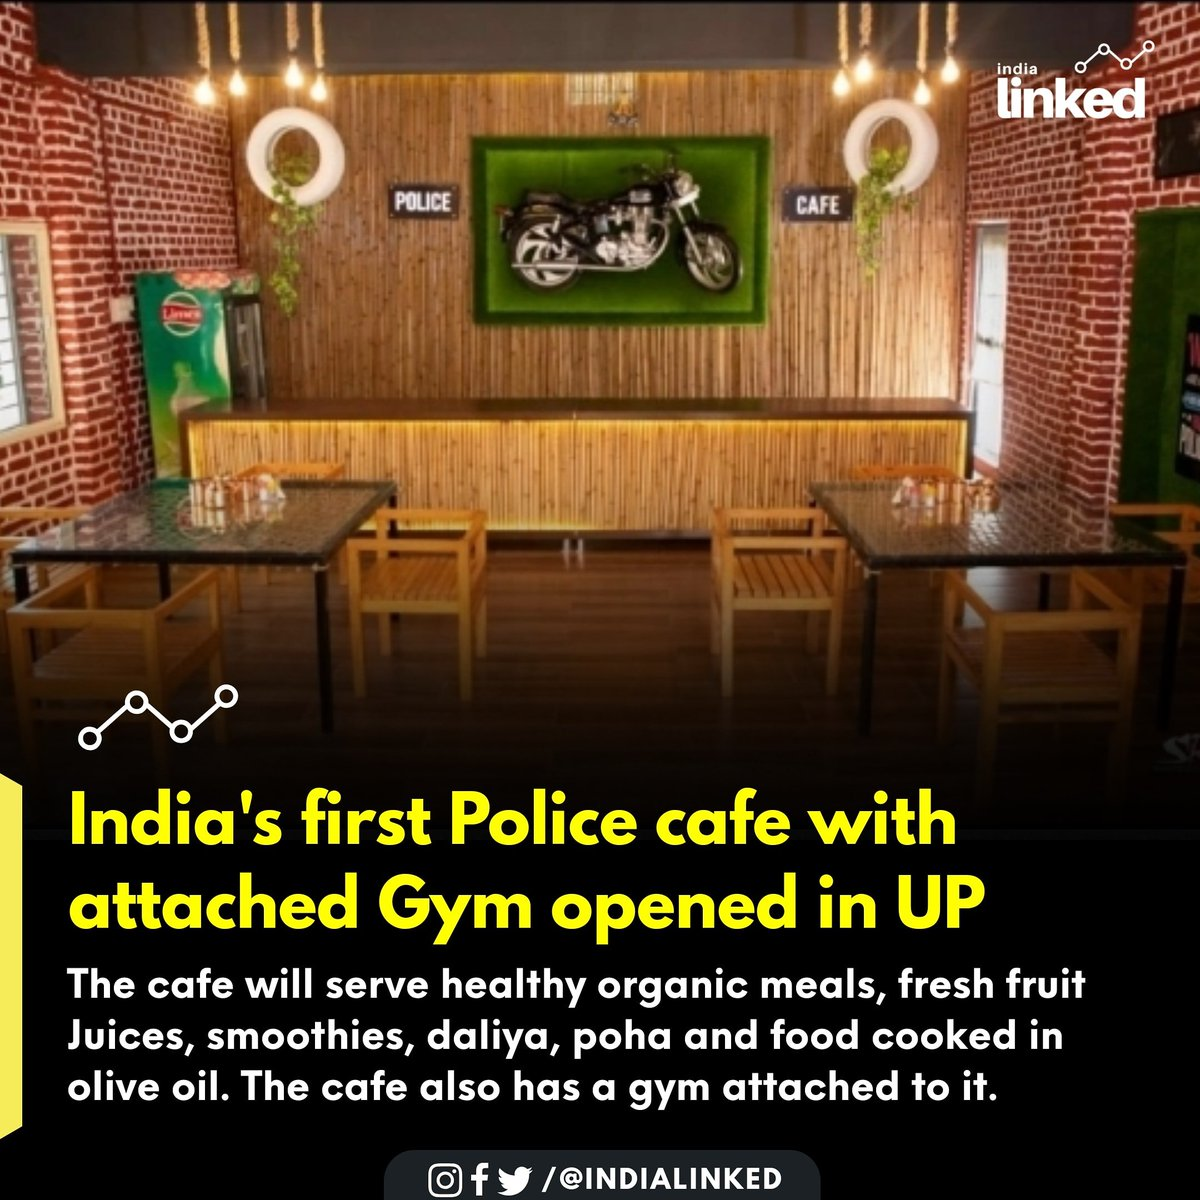 𝗙𝗼𝗹𝗹𝗼𝘄 @indialinked 𝗙𝗼𝗿 𝗠𝗼𝗿𝗲. ⁣ ⁣ UP Cops Set Up Unique 'Police Cafe' to Serve Personnel and Deliver Food in Muzaffarnagar. ⁣ ⁣ #indialinked #indianpoliceservice #indianpolice #muzaffarnagar #uttarpradeshpic.twitter.com/ZhOZZFNmCr